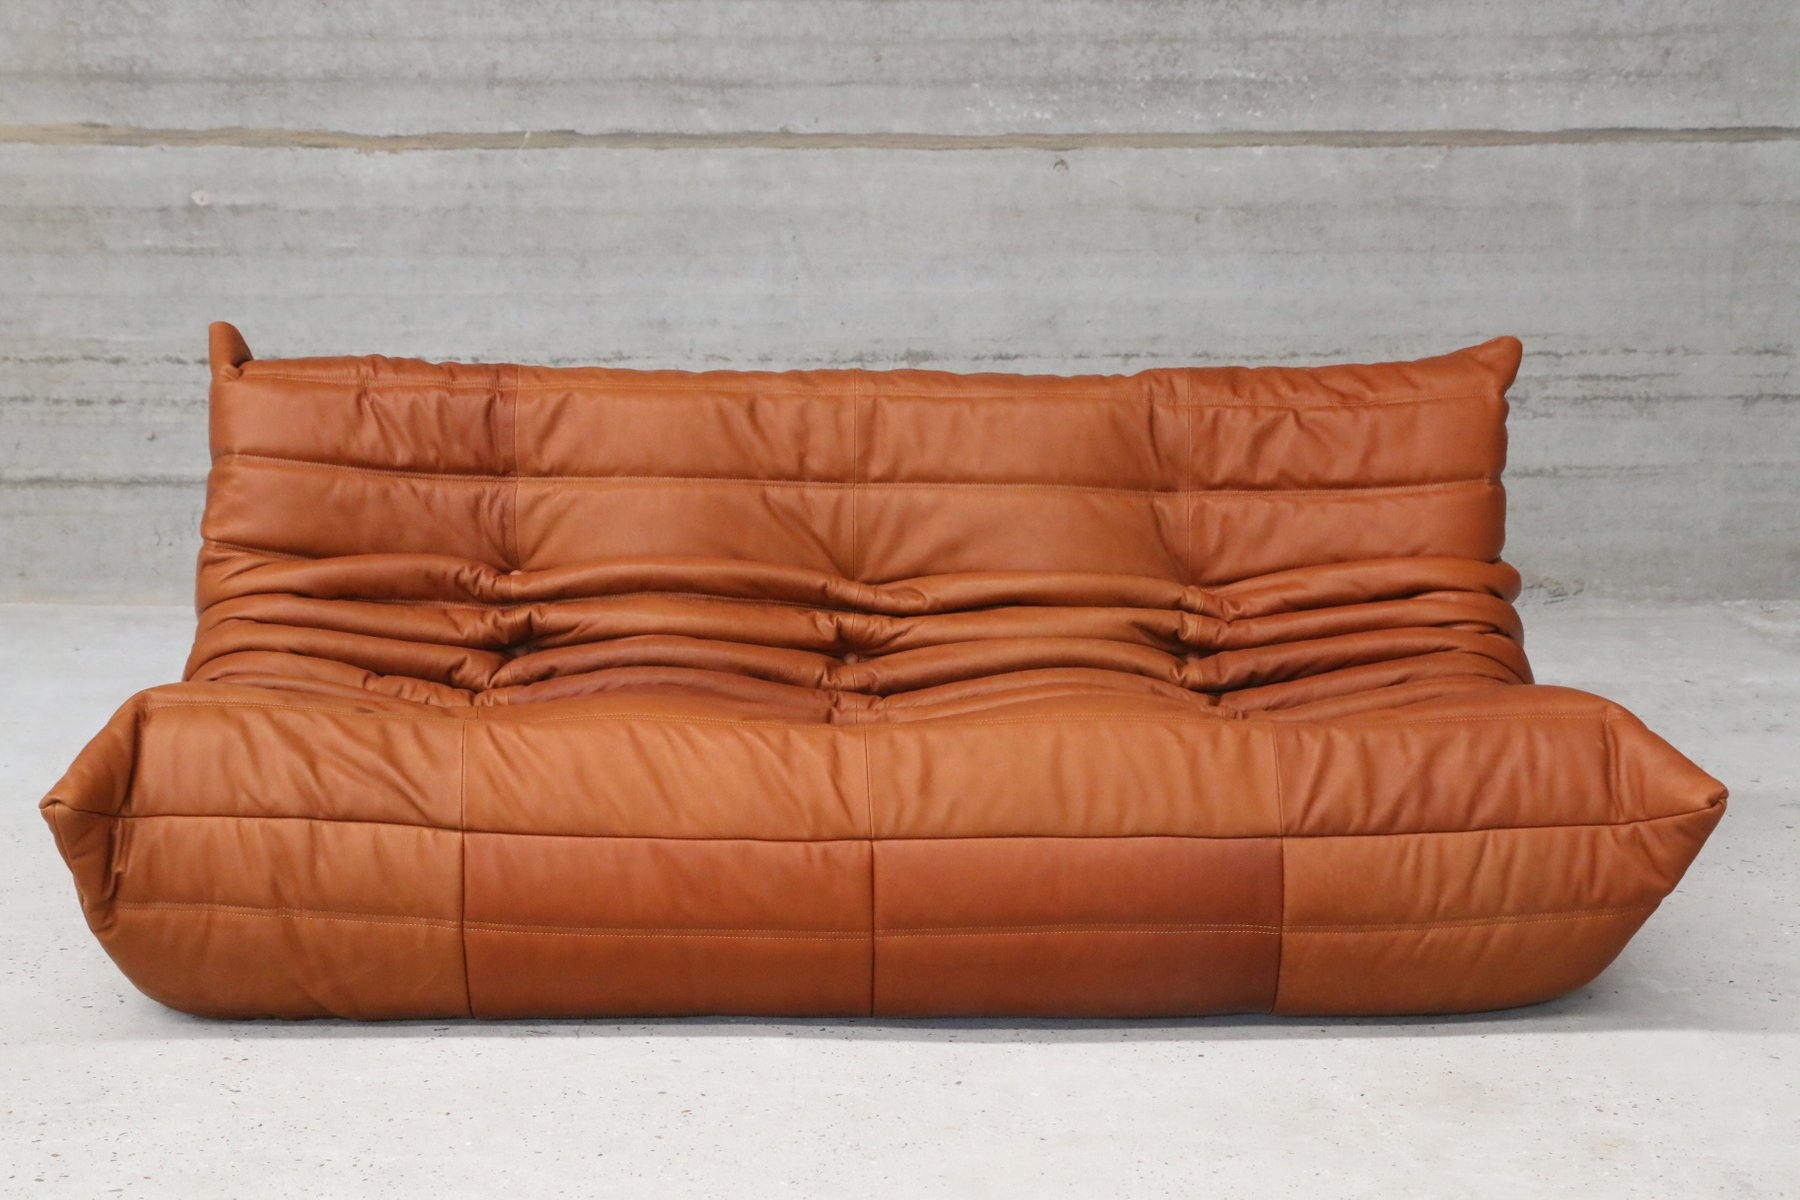 vintage togo cognac leather three seater sofa by michel ducaroy for ligne roset for sale at pamono. Black Bedroom Furniture Sets. Home Design Ideas